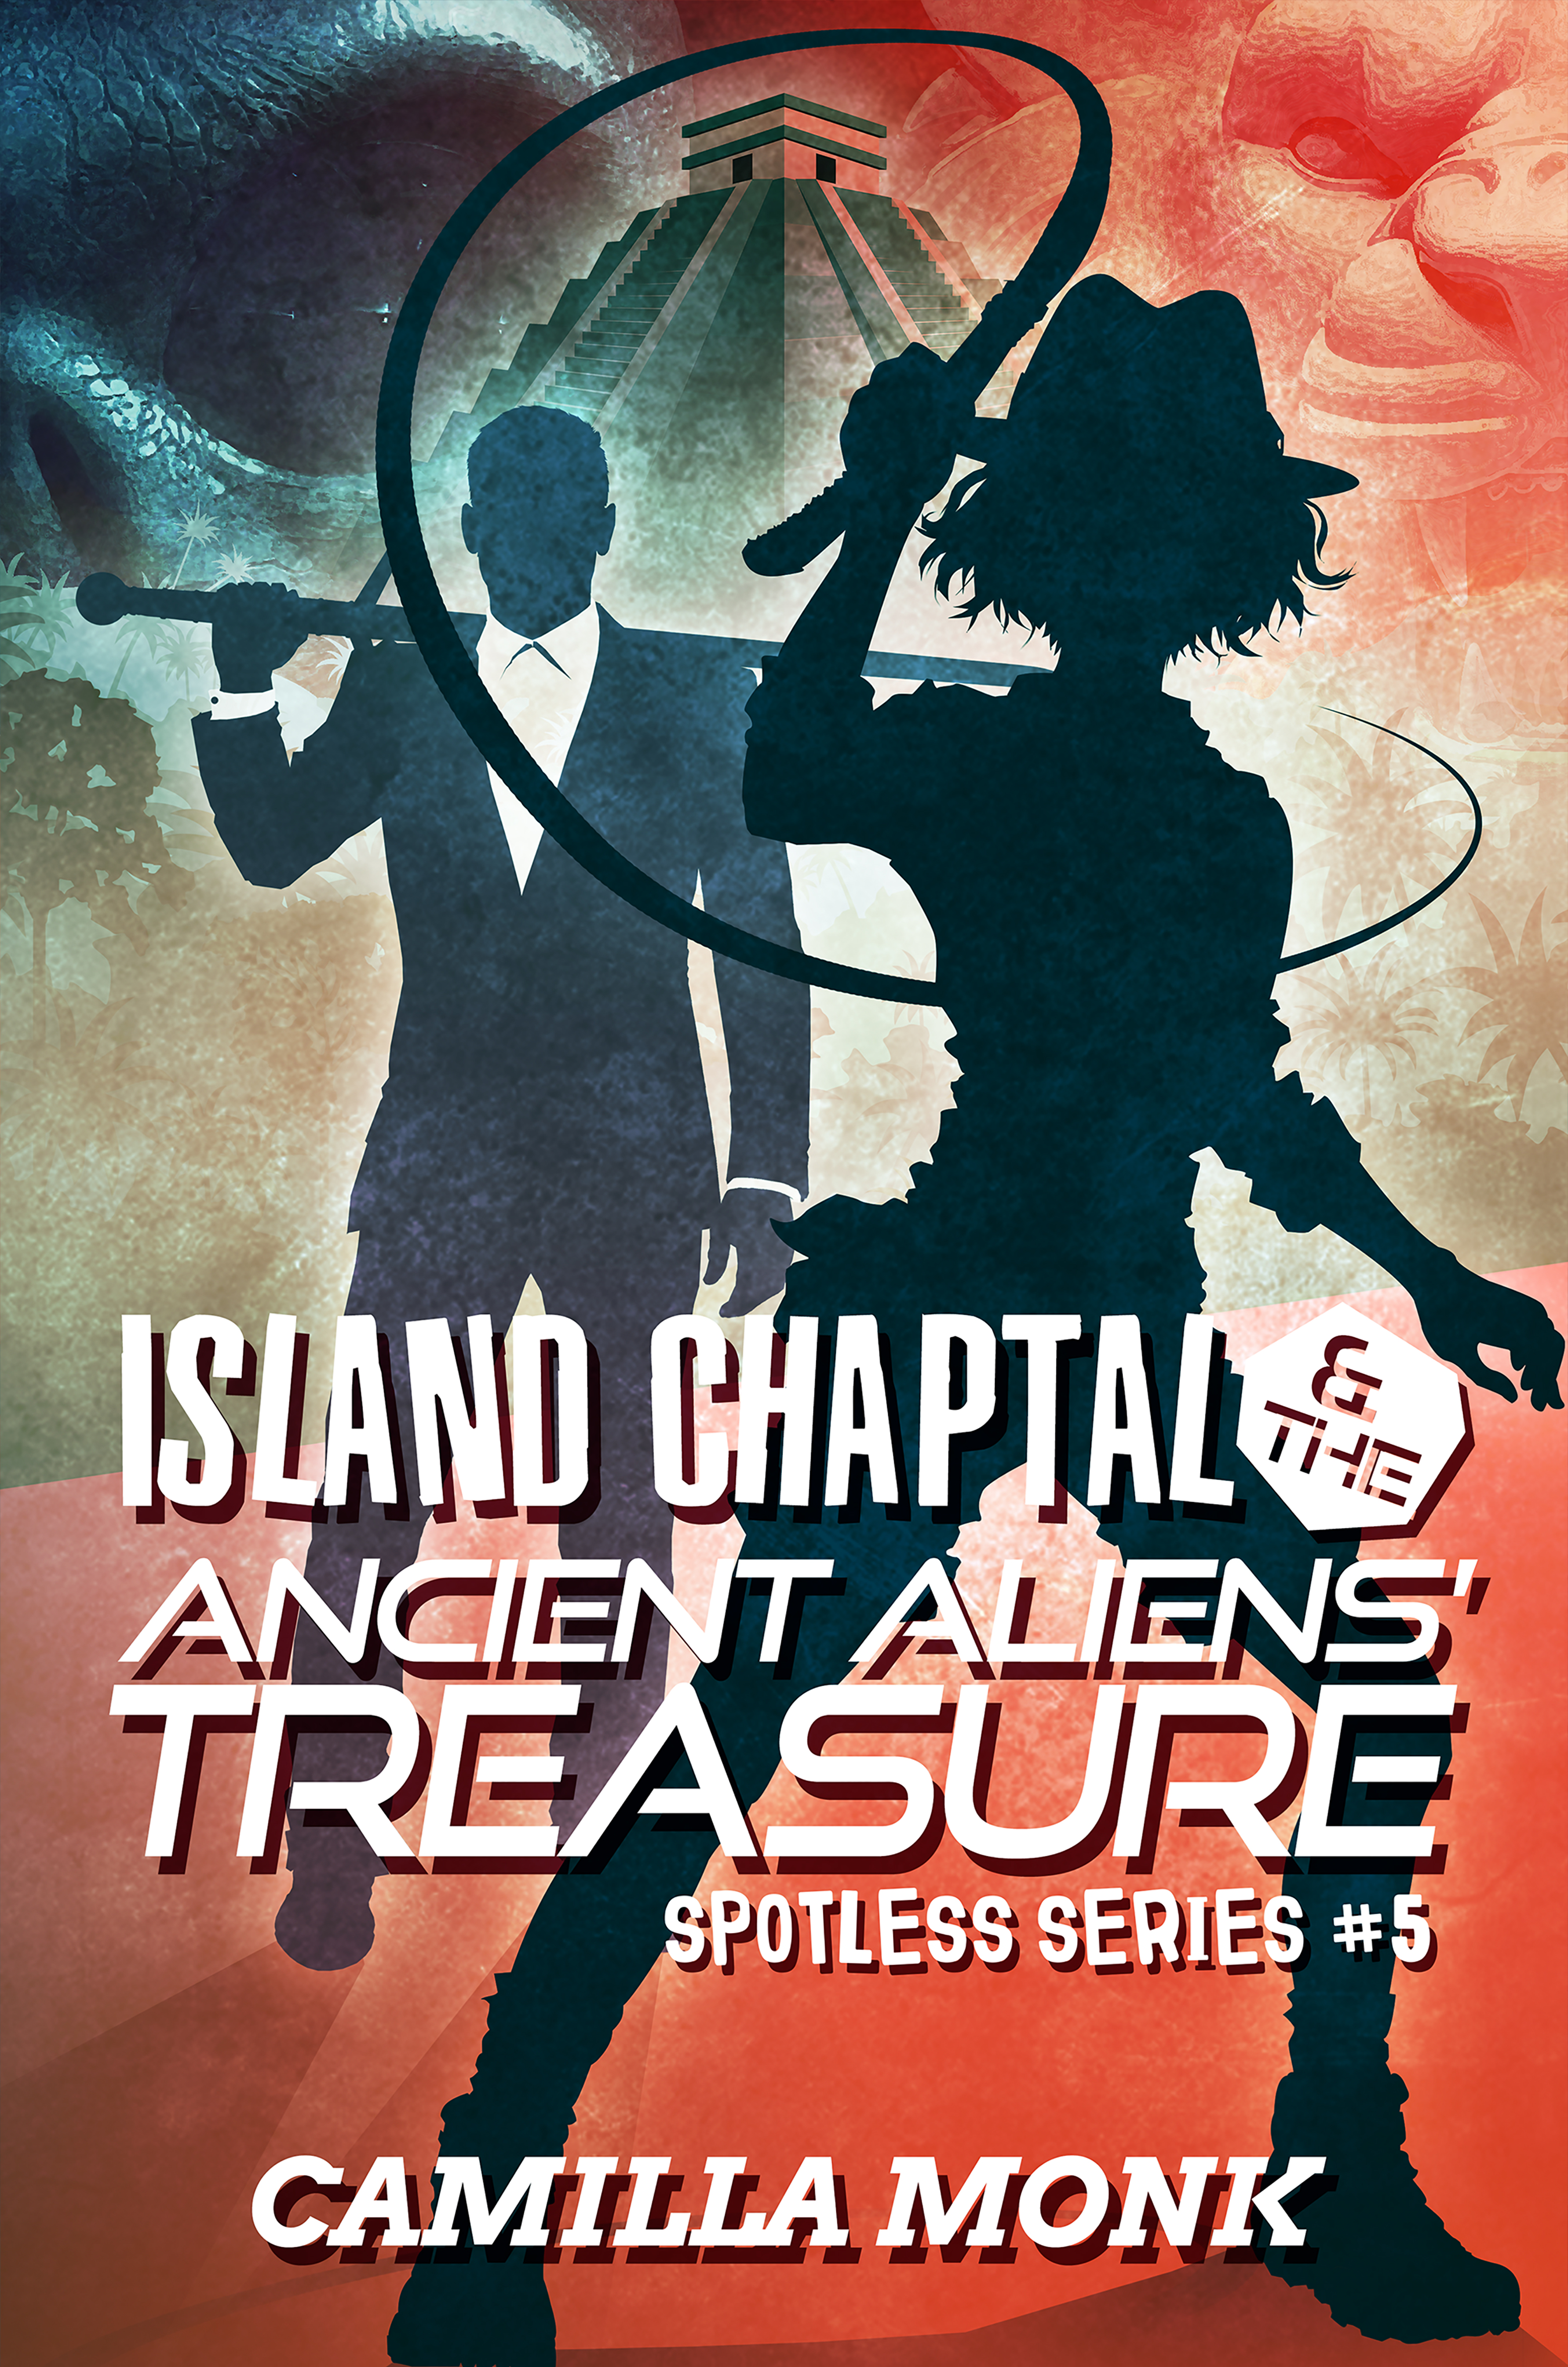 Island Chaptal and the Ancient Aliens' Treasure (Spotless #5) by Camilla Monk